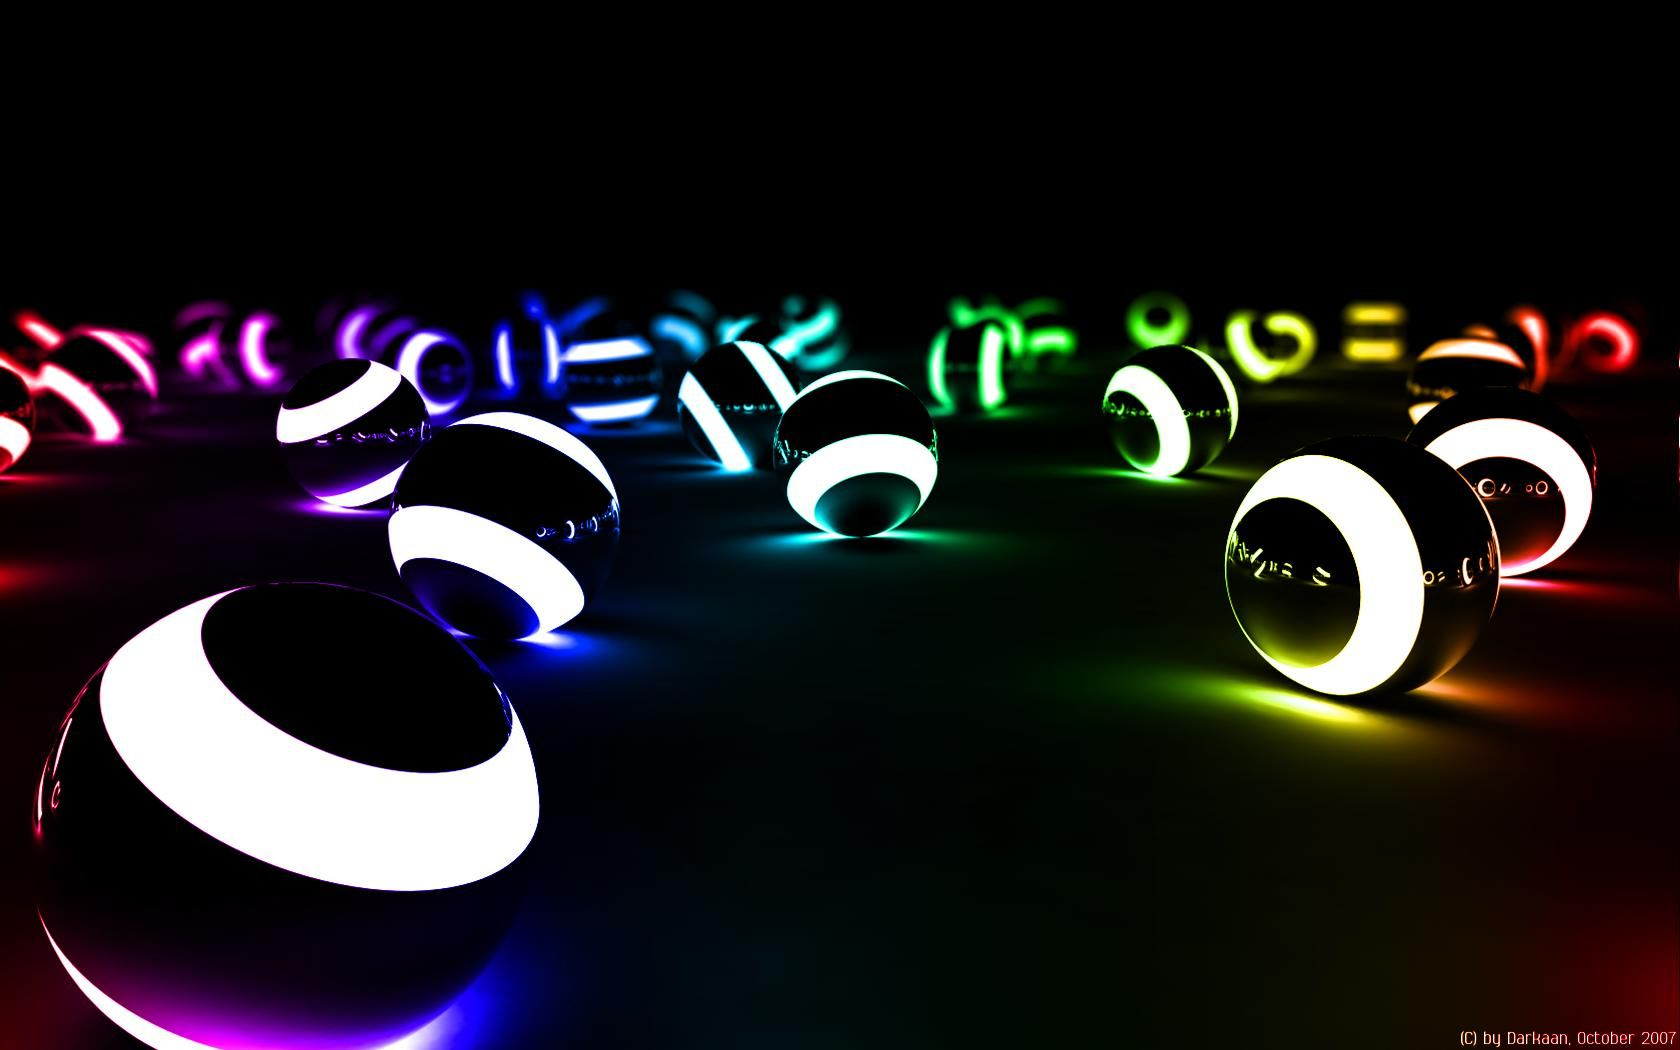 1680x1050 Hd Neon Glow Pool Balls Neon Light Wallpaper Neon Wallpaper Abstract Iphone Wallpaper